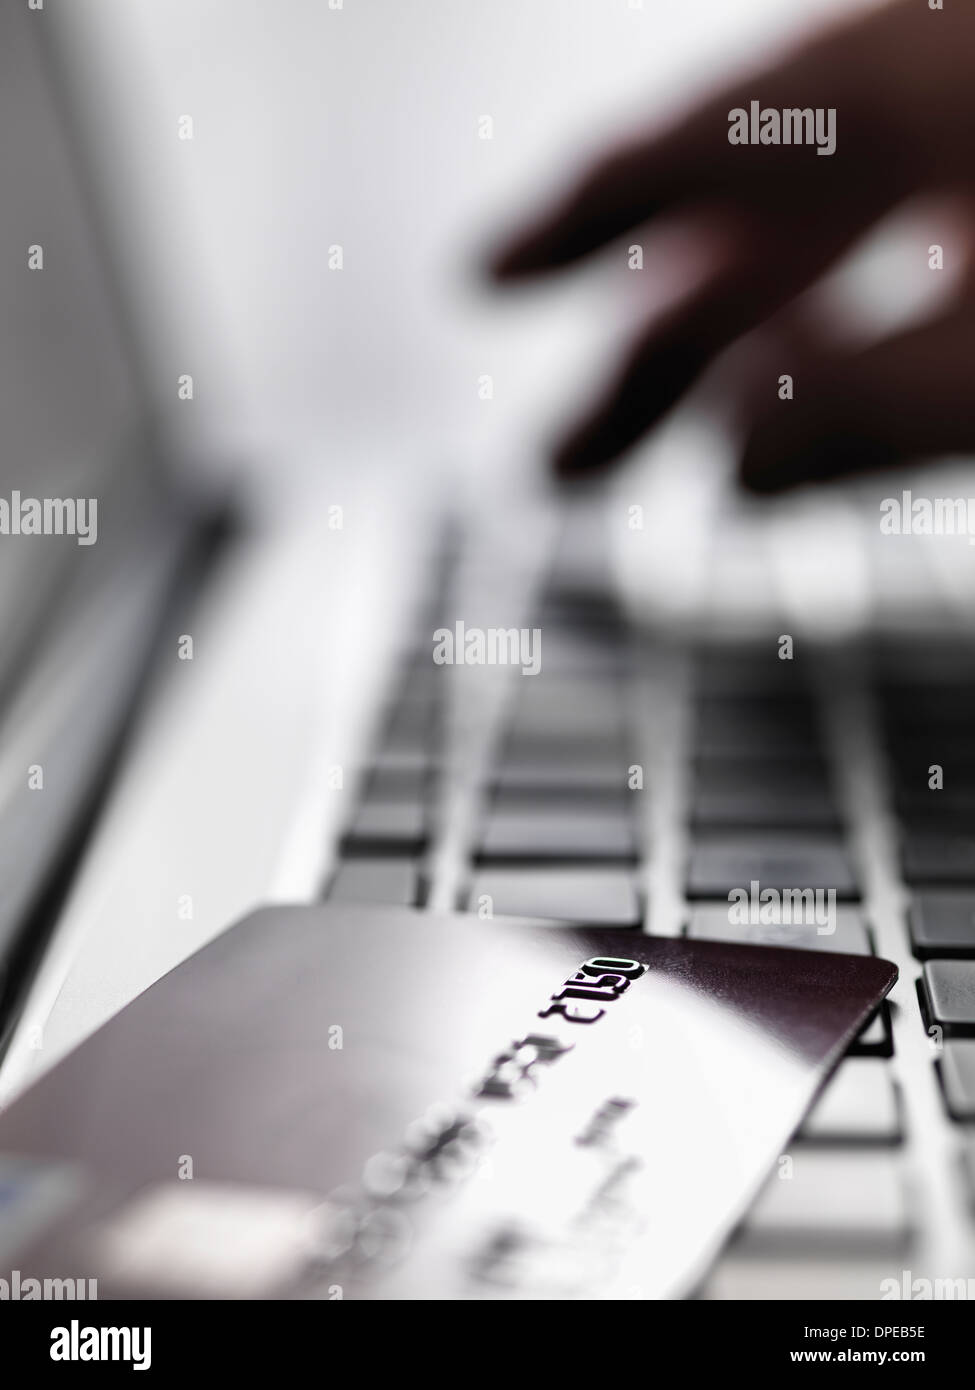 Hand tapping account details on laptop to illustrate internet shopping and internet fraud - Stock Image